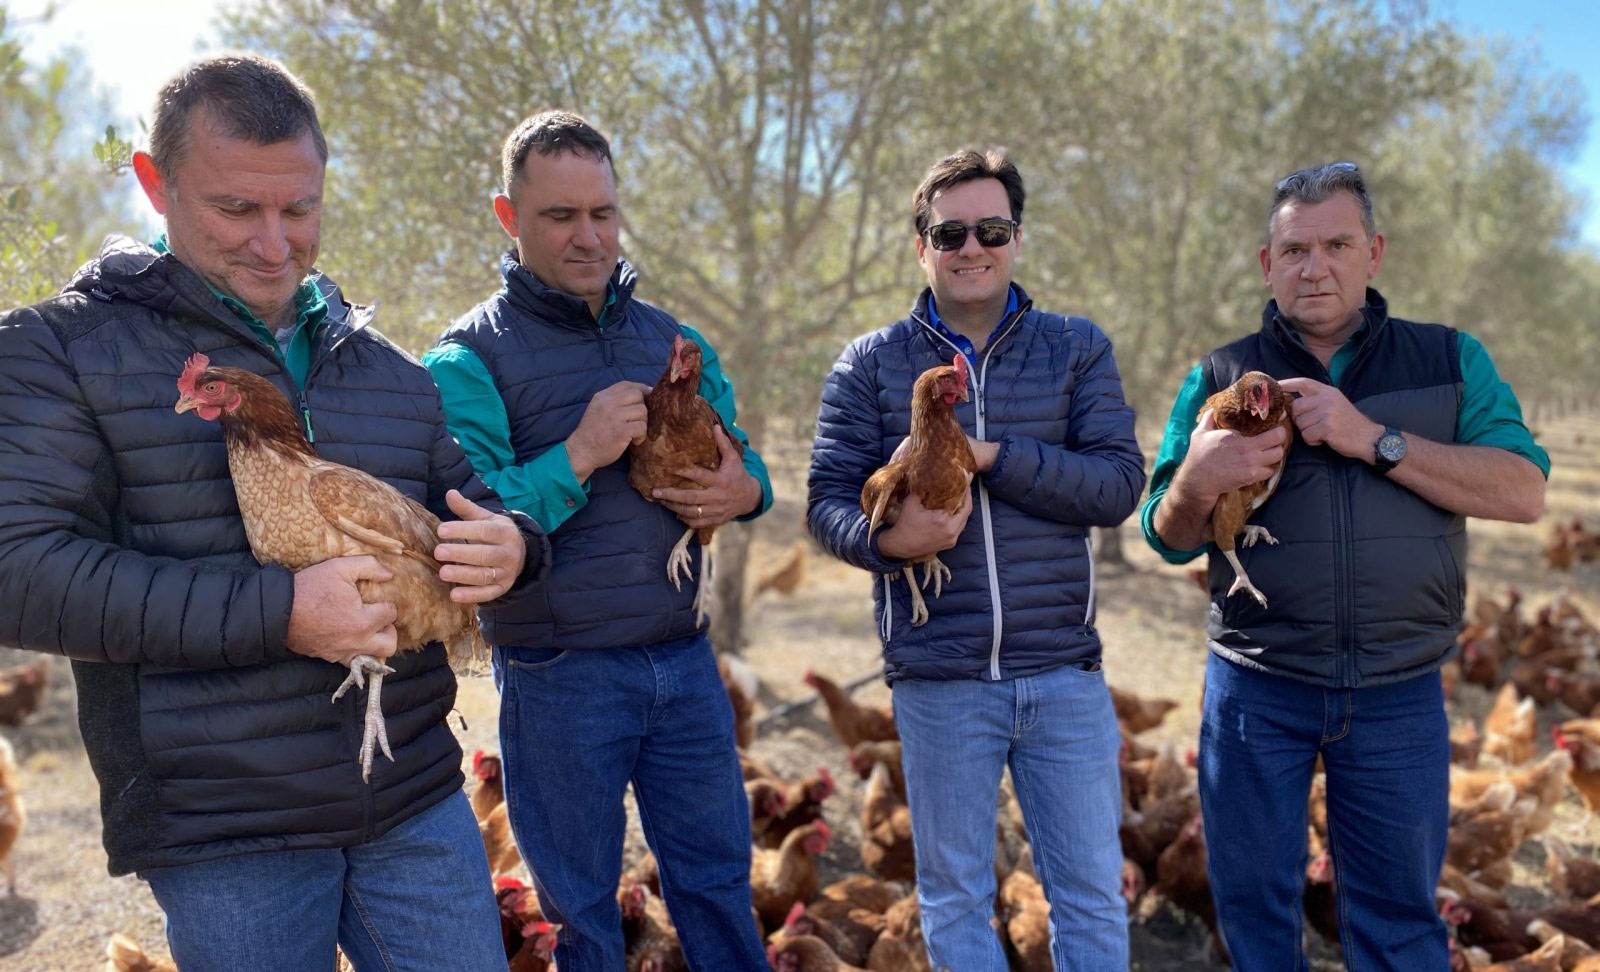 farmers holding chickens